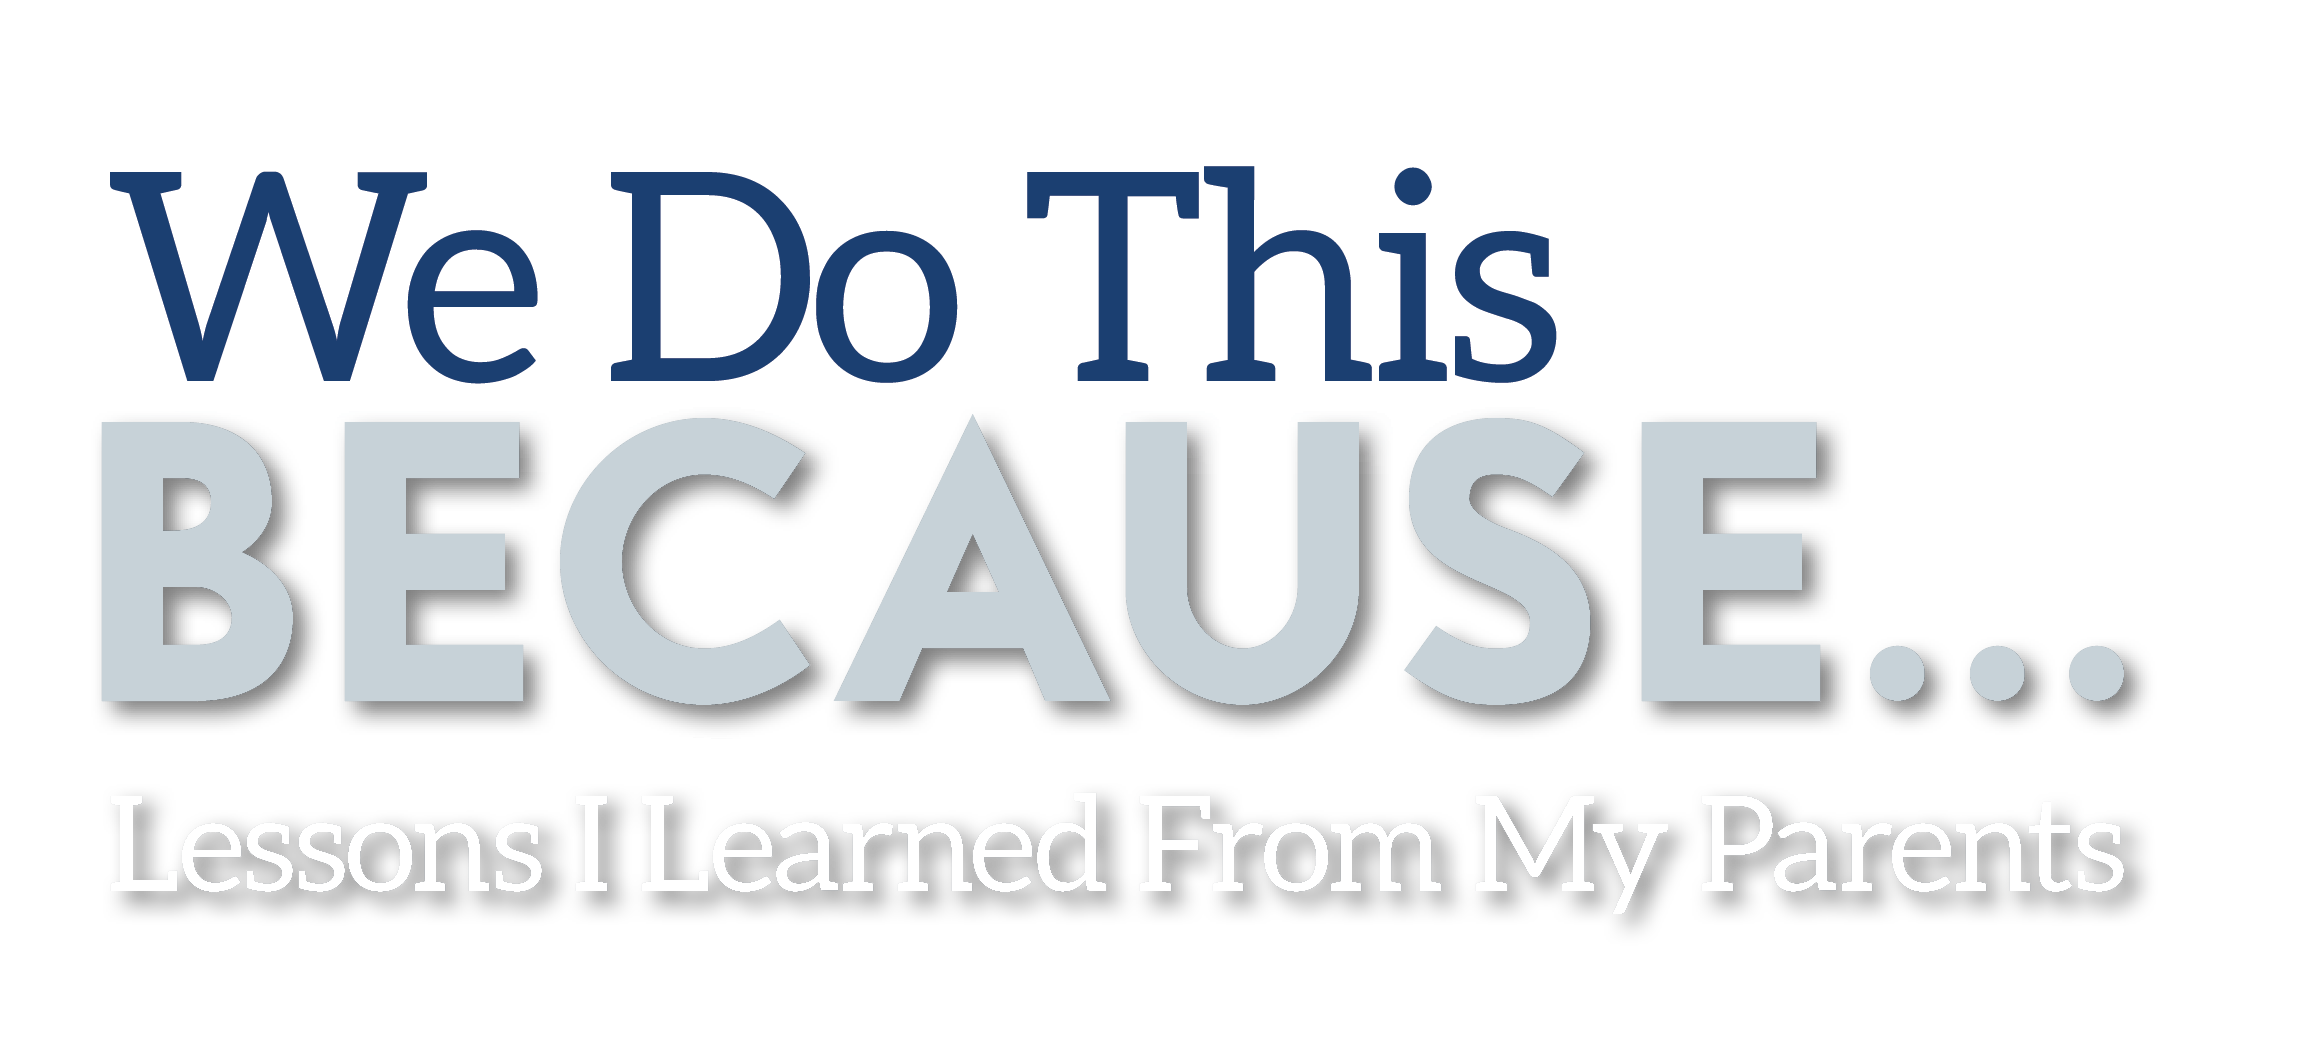 We Do This Because... Lessons I Learned From My Parents